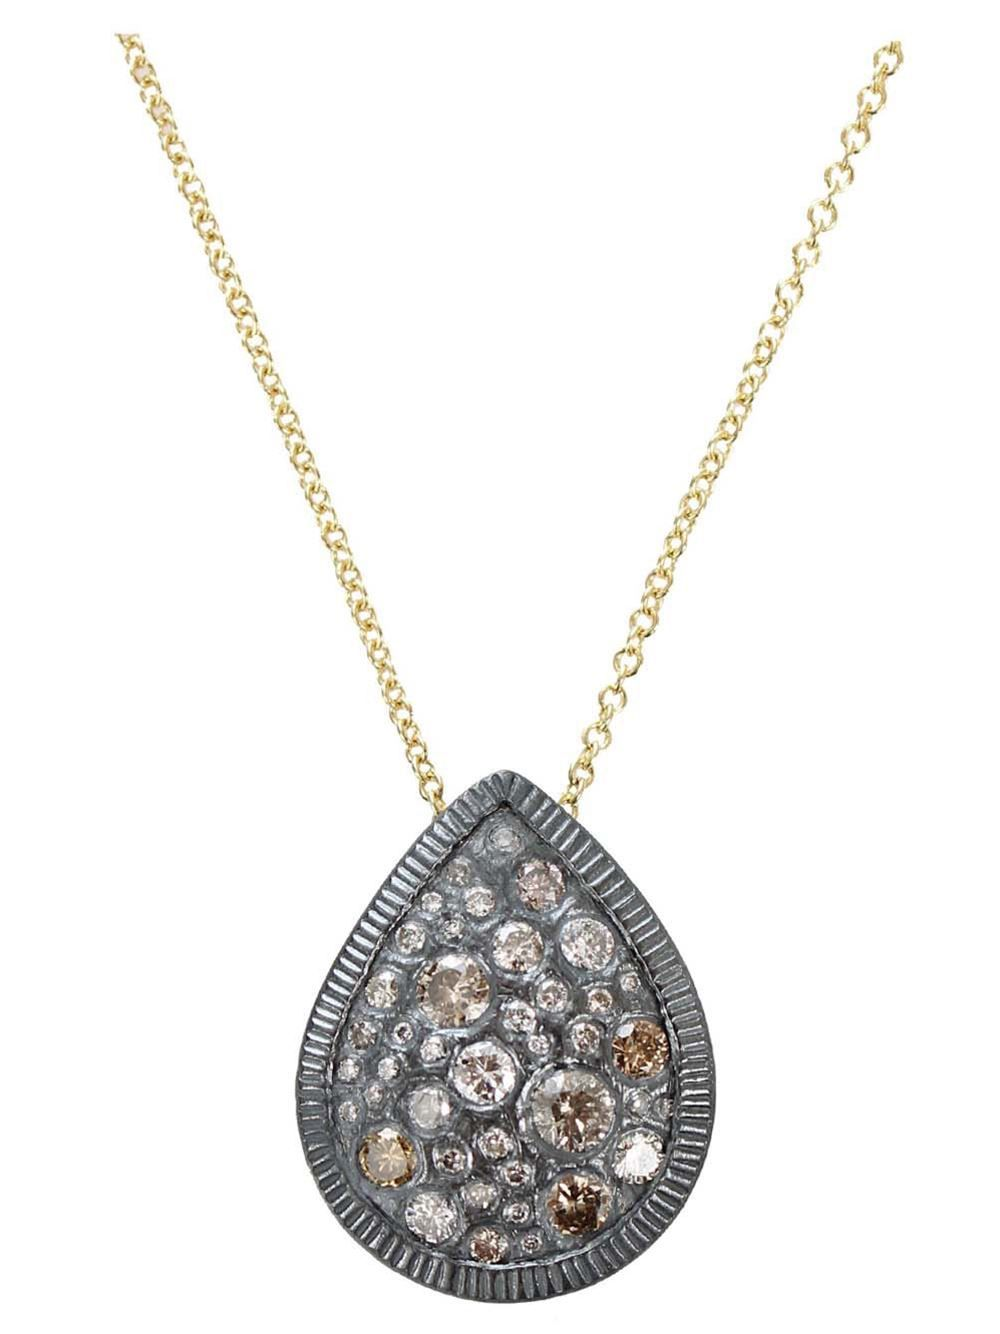 18K yellow gold and sterling silver teardrop pendant necklace from Todd Reed featuring diamond teardrop pendant with cognac diamonds.